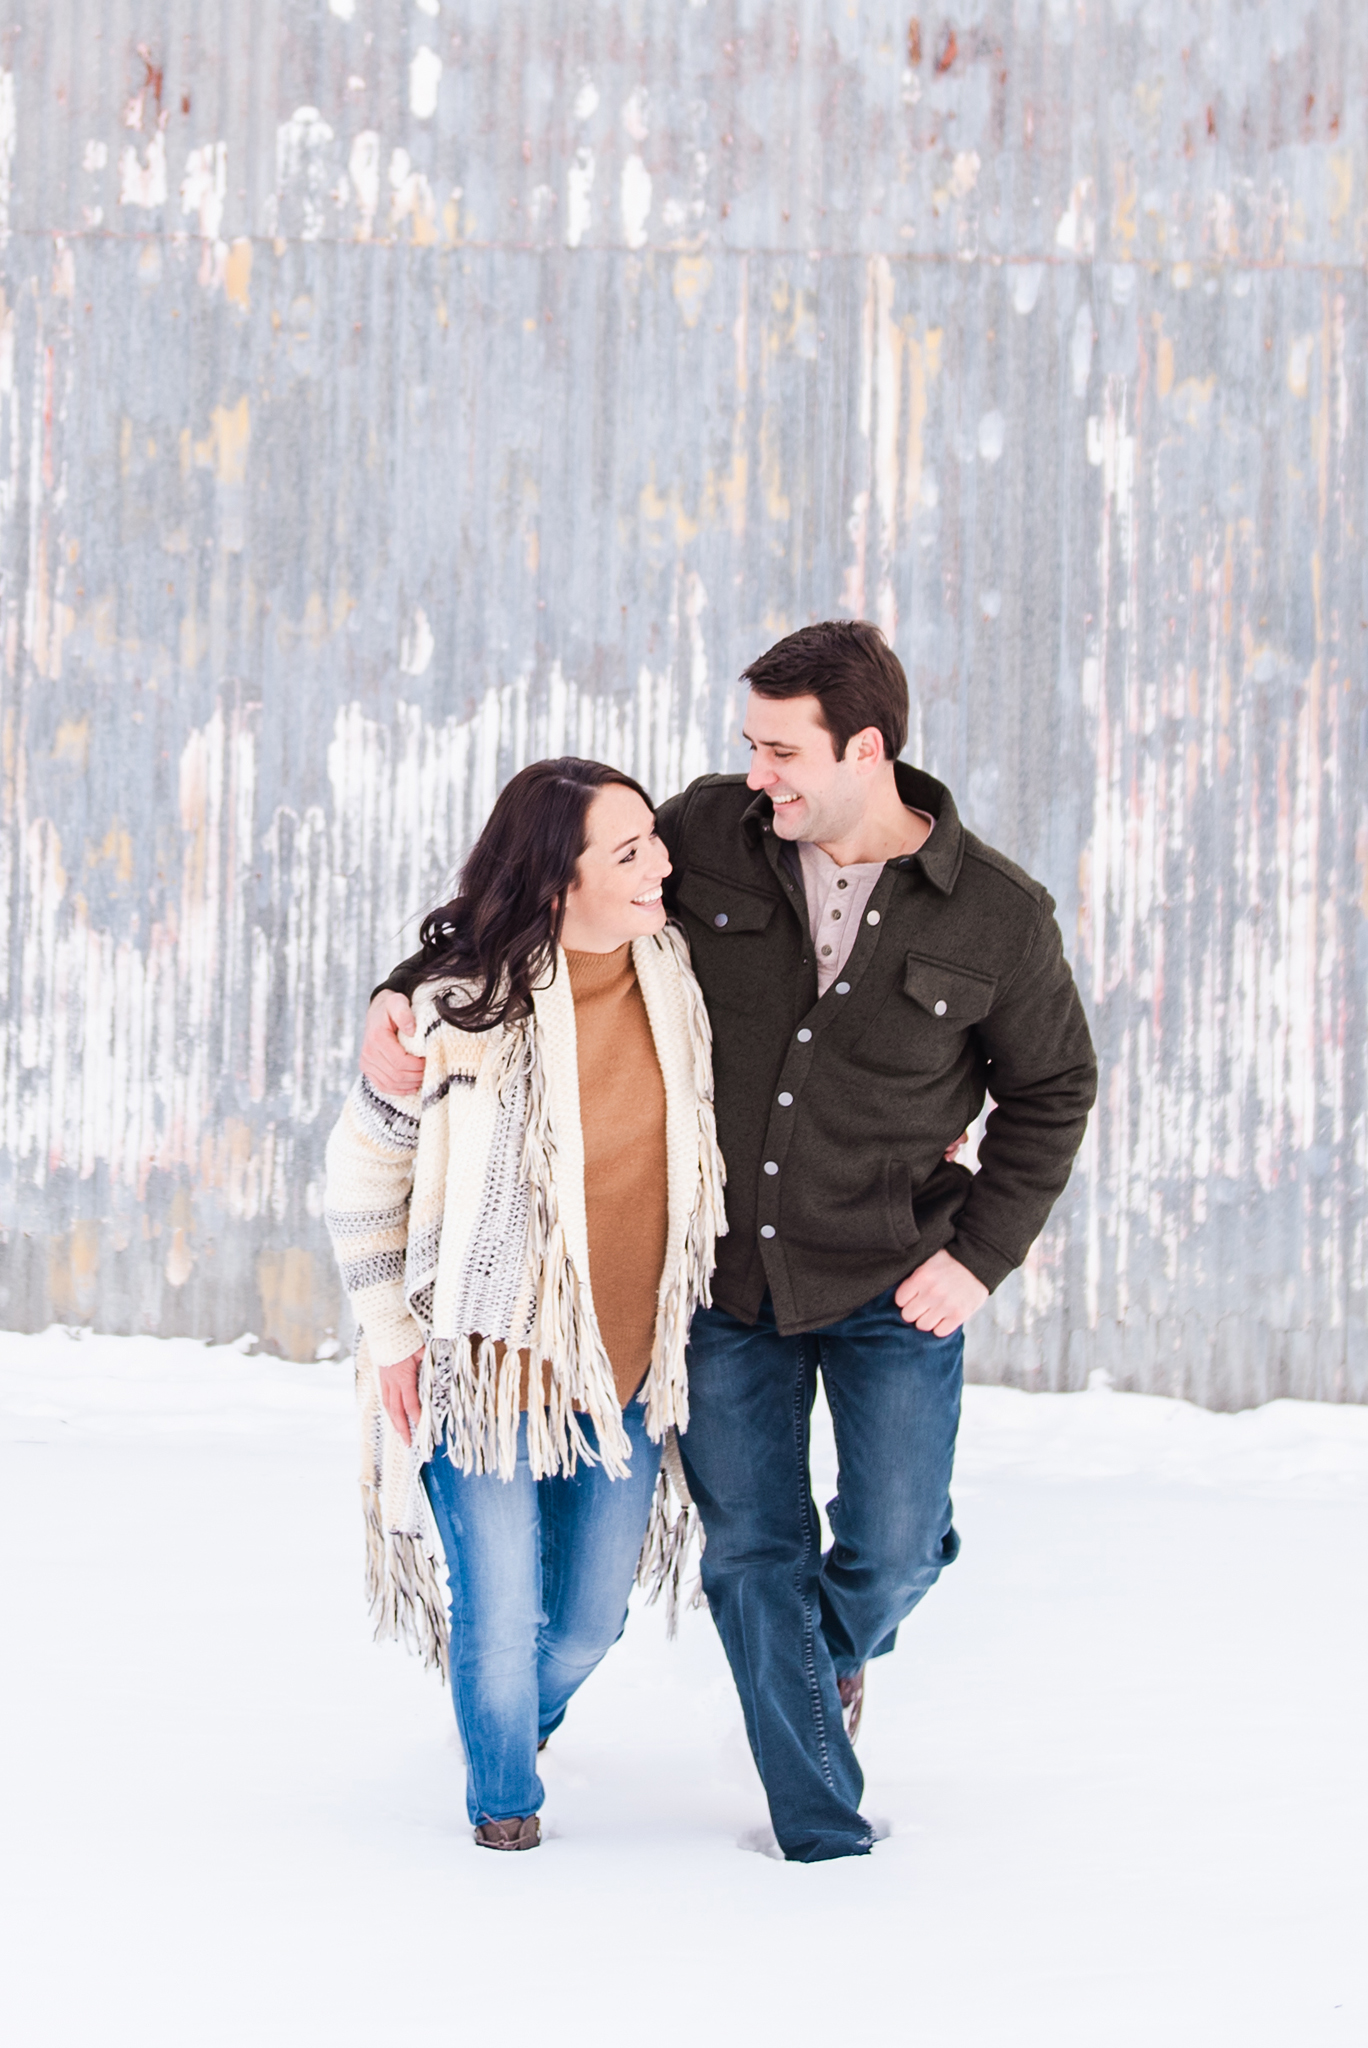 Fallbrook_Central_NY_Engagement_Session_JILL_STUDIO_Rochester_NY_Photographer_DSC_4733.jpg